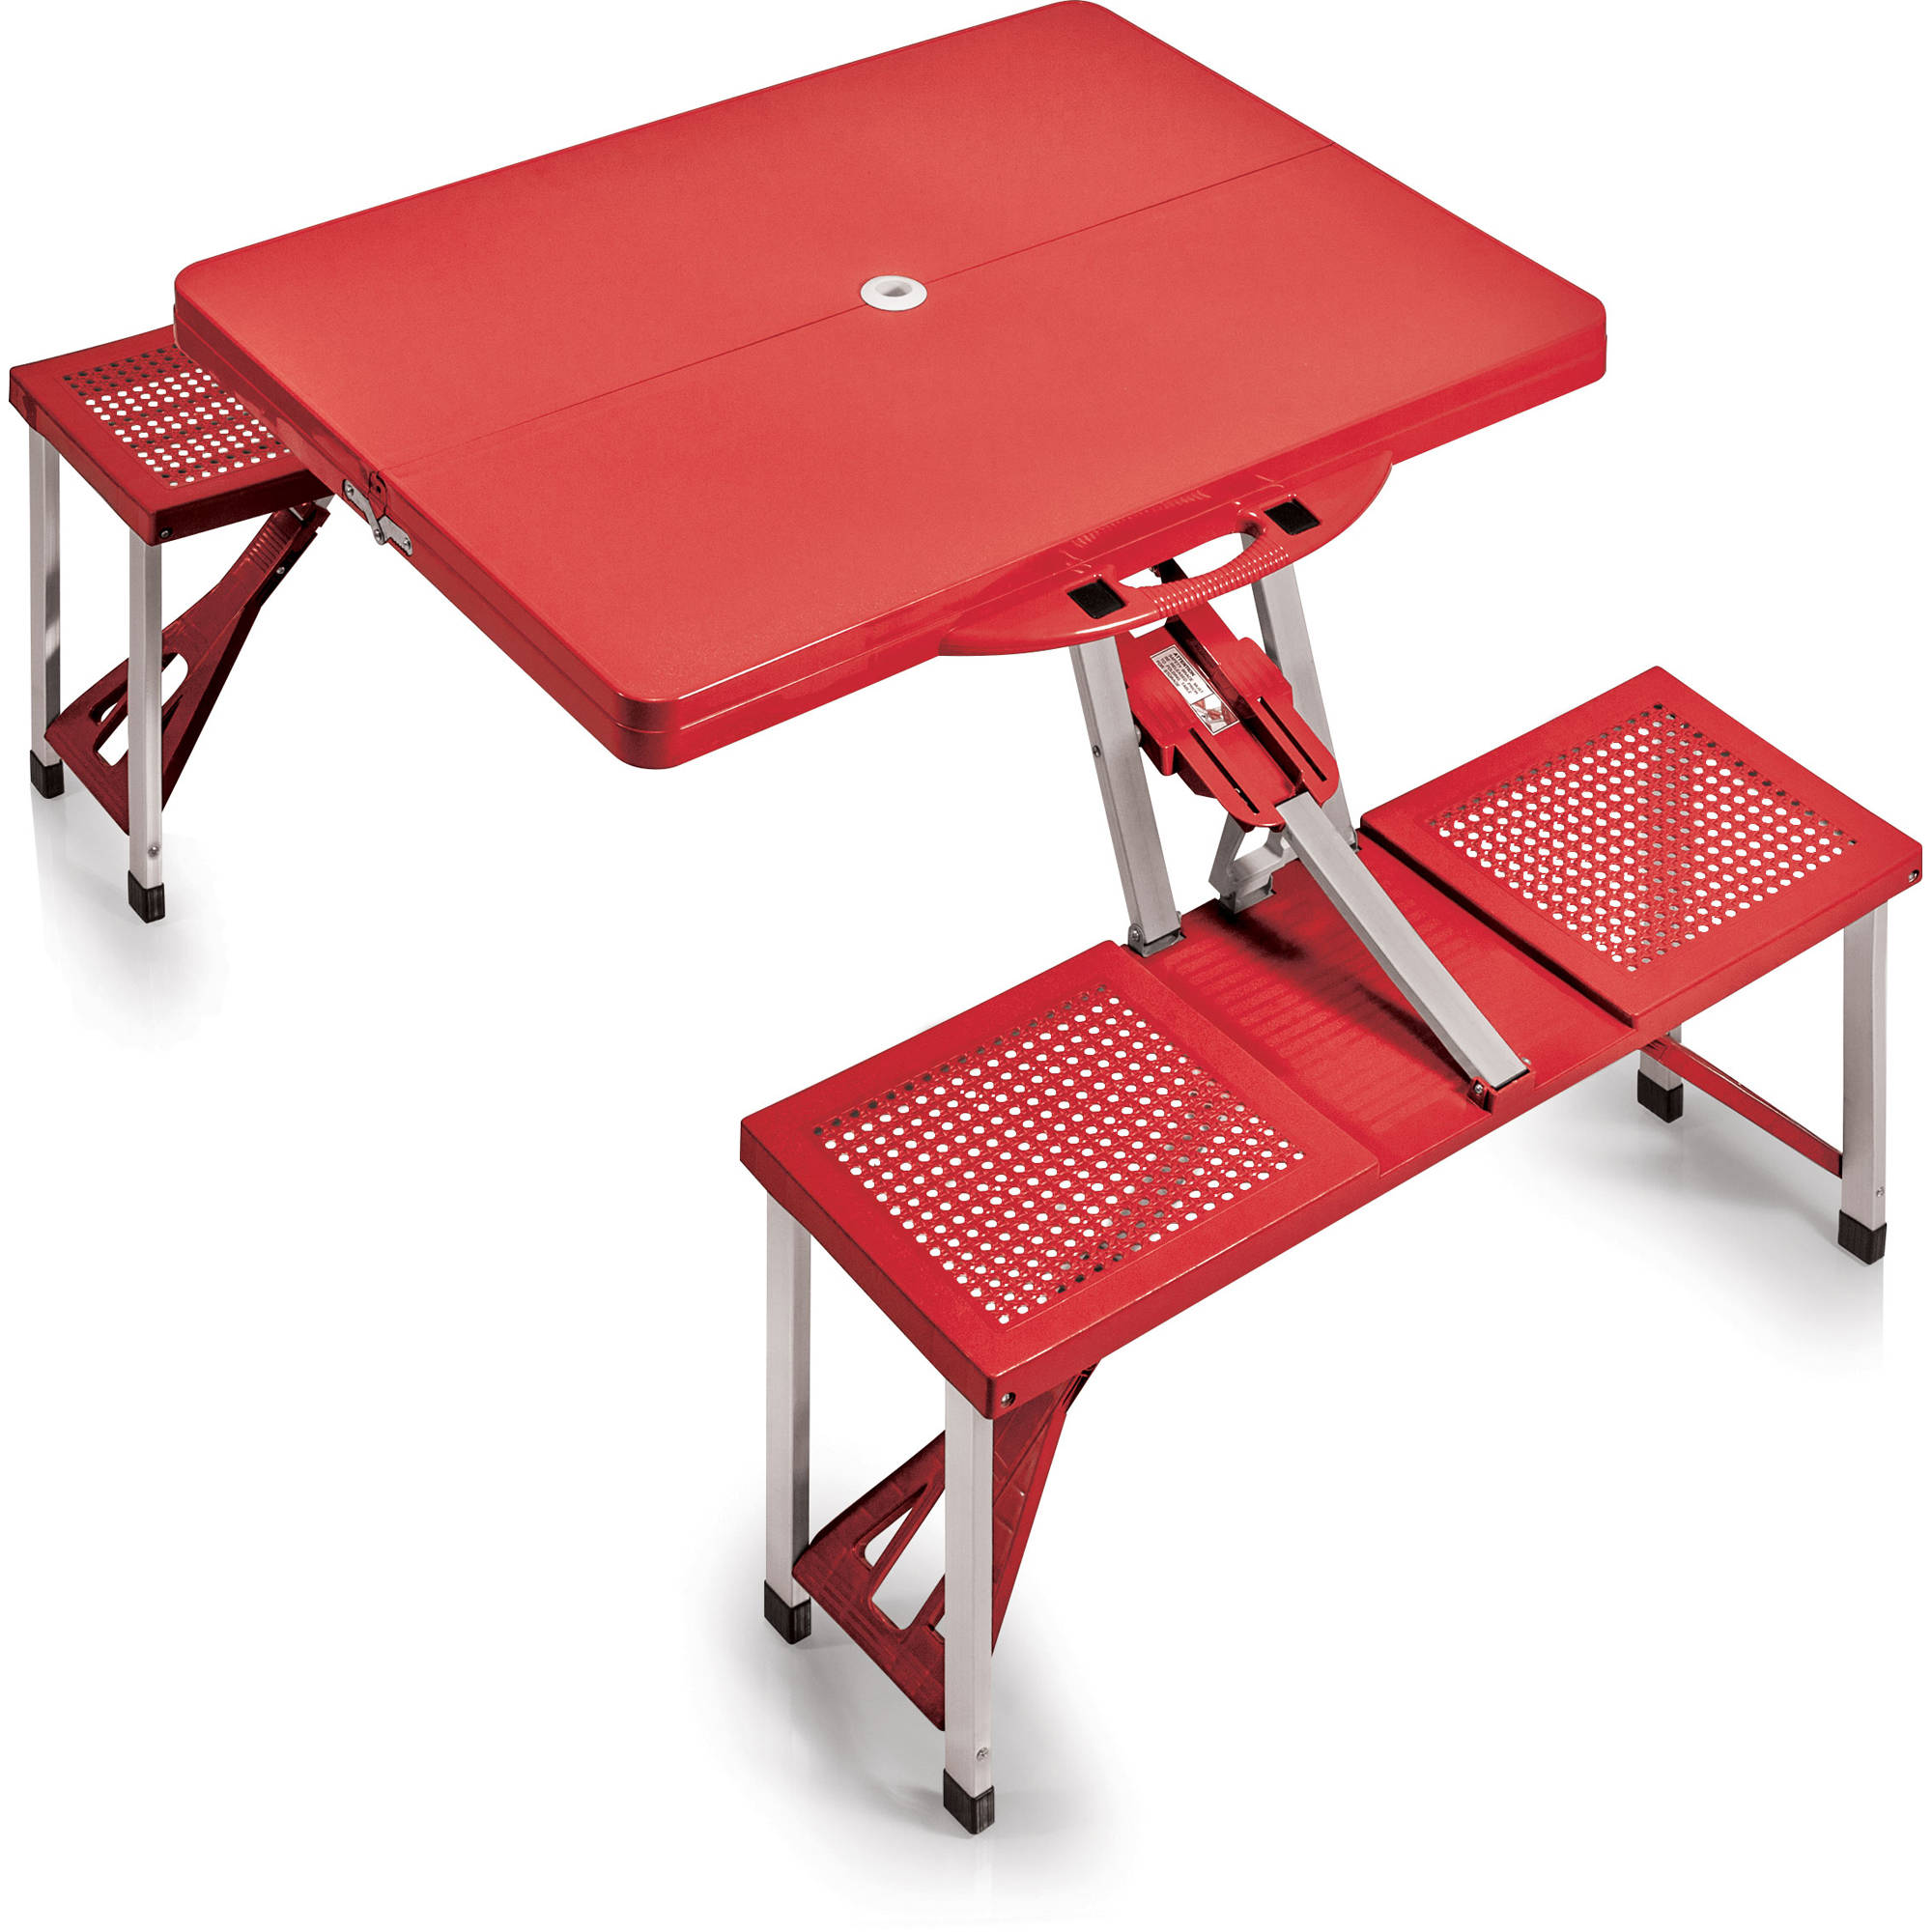 Picnic Time Portable Picnic Table With Benches 811 00 100